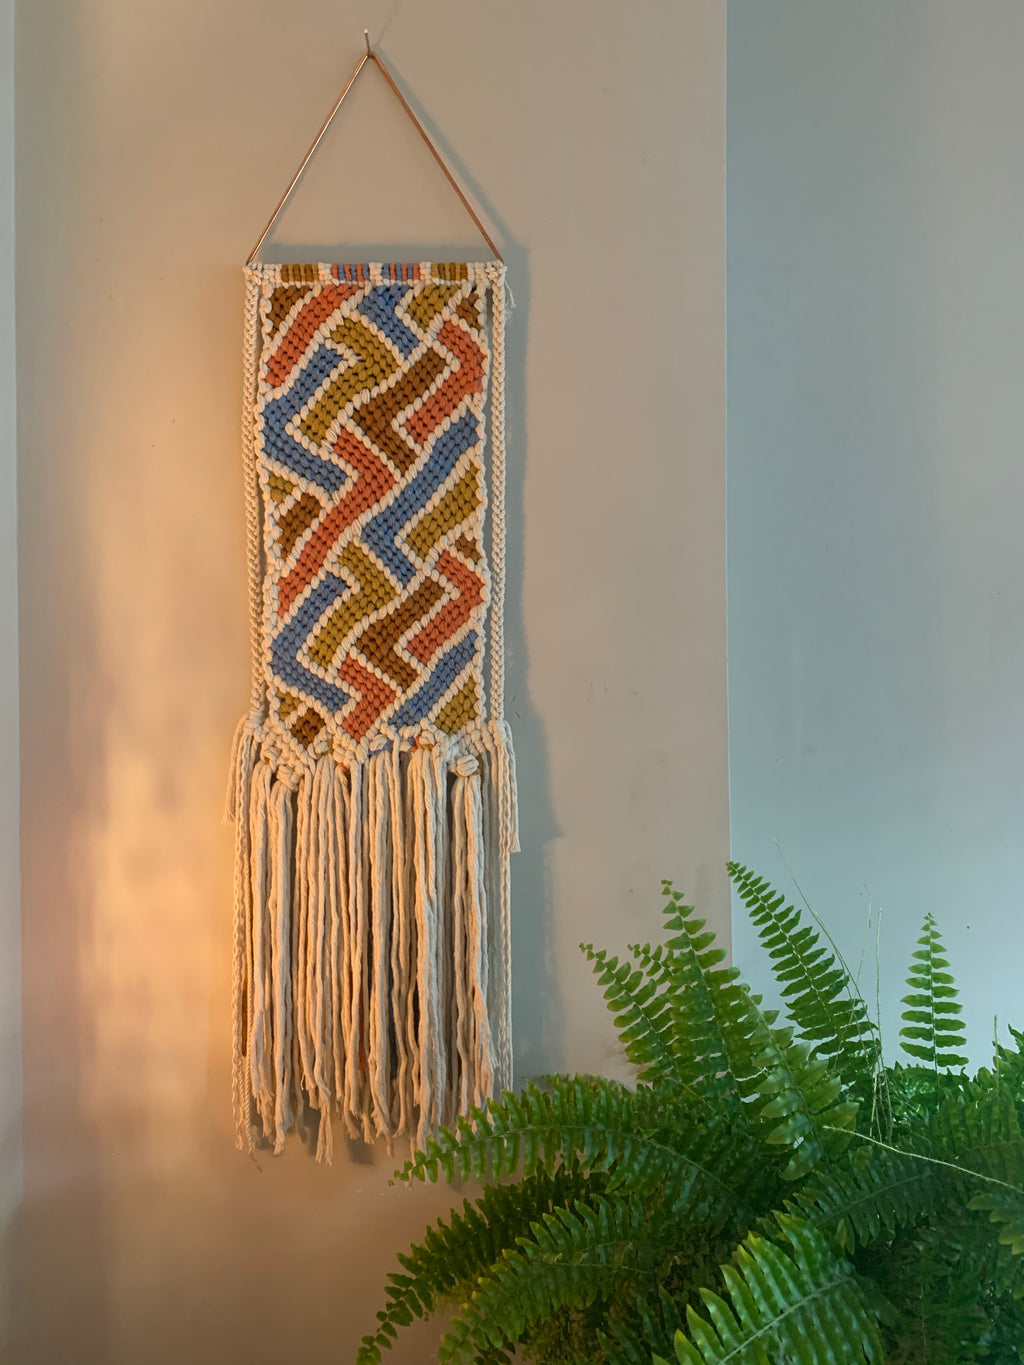 The Tessera Macramé Tapestry